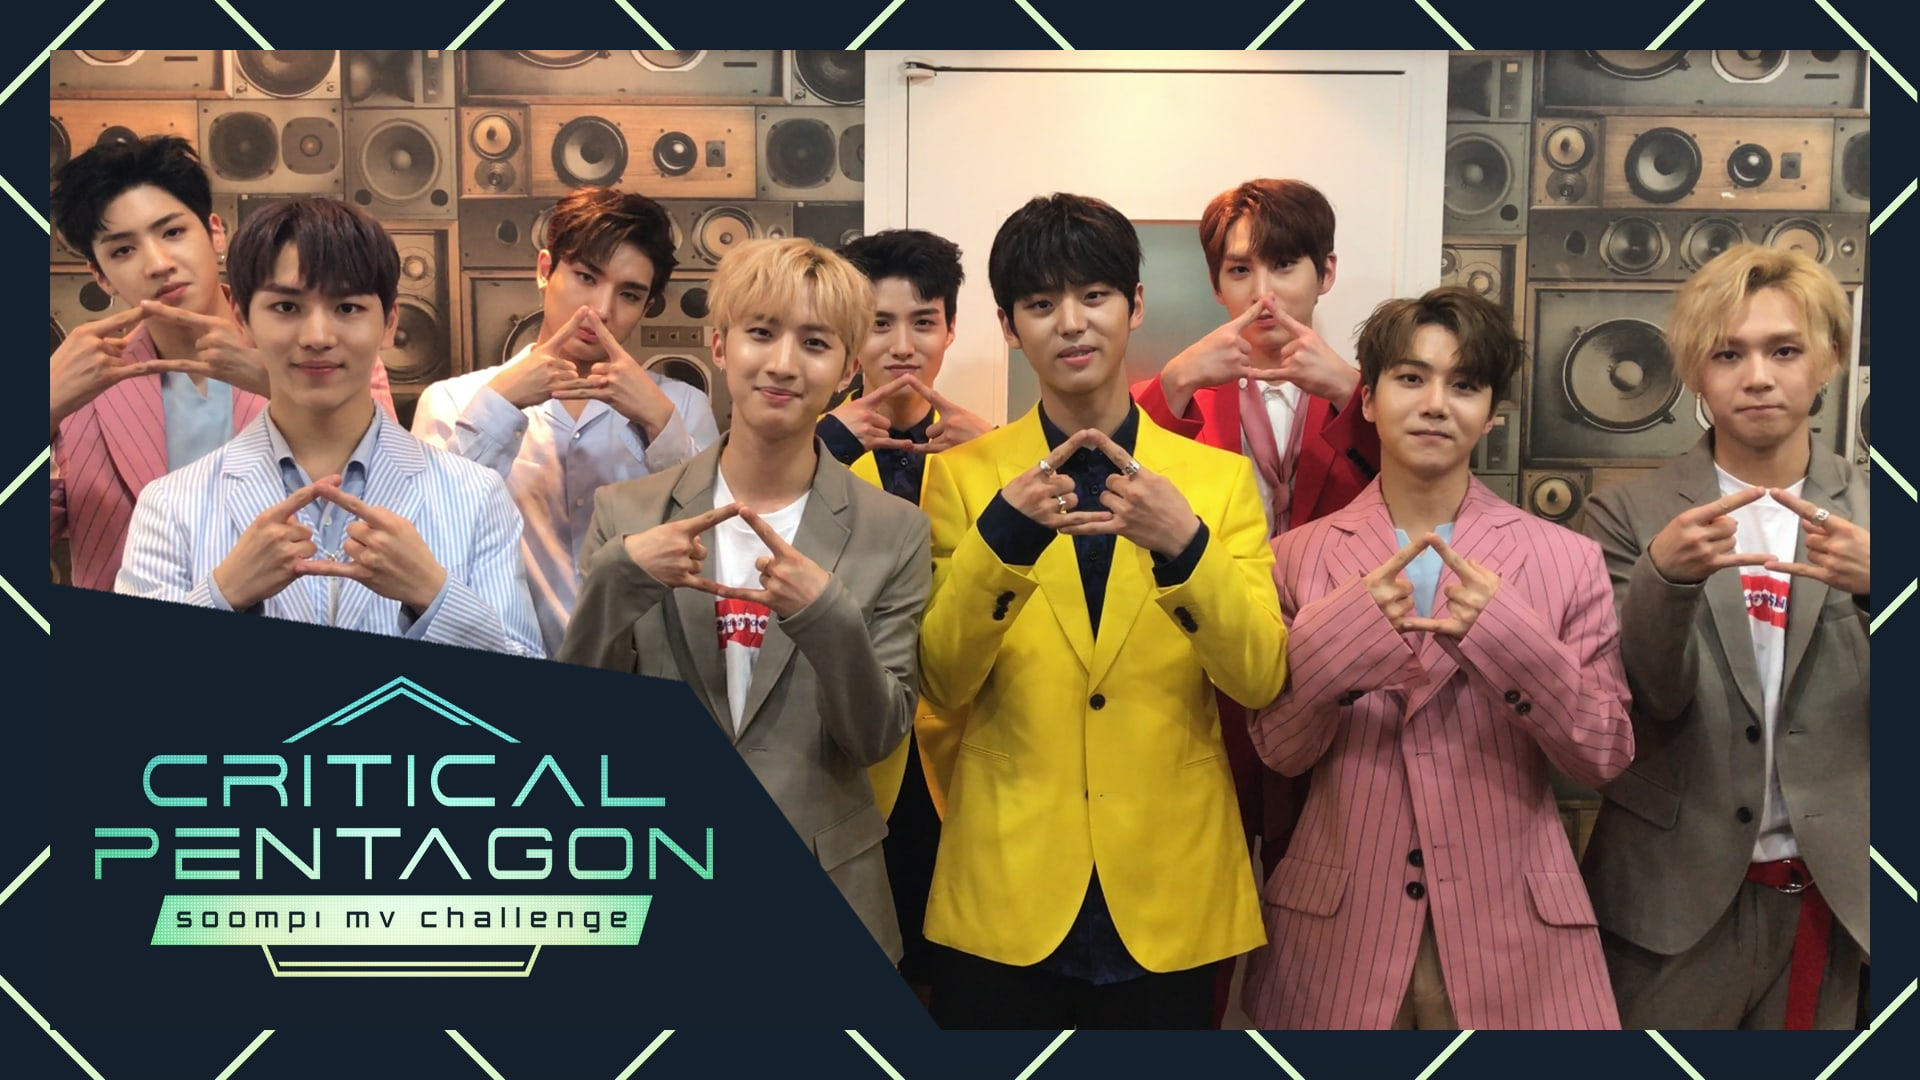 Exclusive: Bask In PENTAGONs Beauty Through Our CRITICAL PENTAGON MV Streaming Event